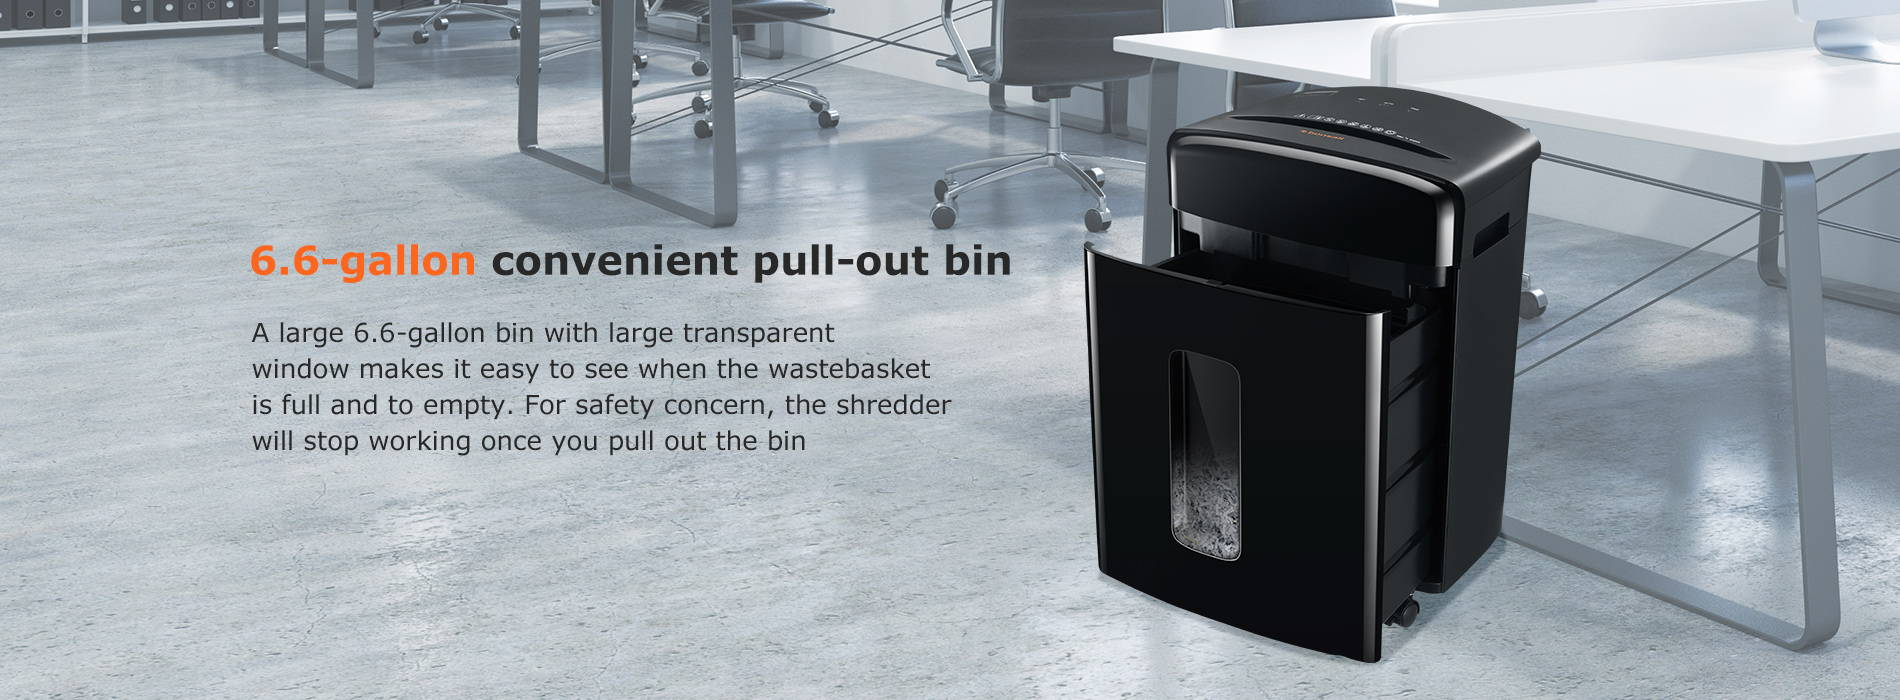 6.6-gallon convenient pull-out bin A large 6.6-gallon bin with large transparent window makes it easy to see when the wastebasket is full and to empty. For safety concern, the shredder will stop working once you pull out the bin